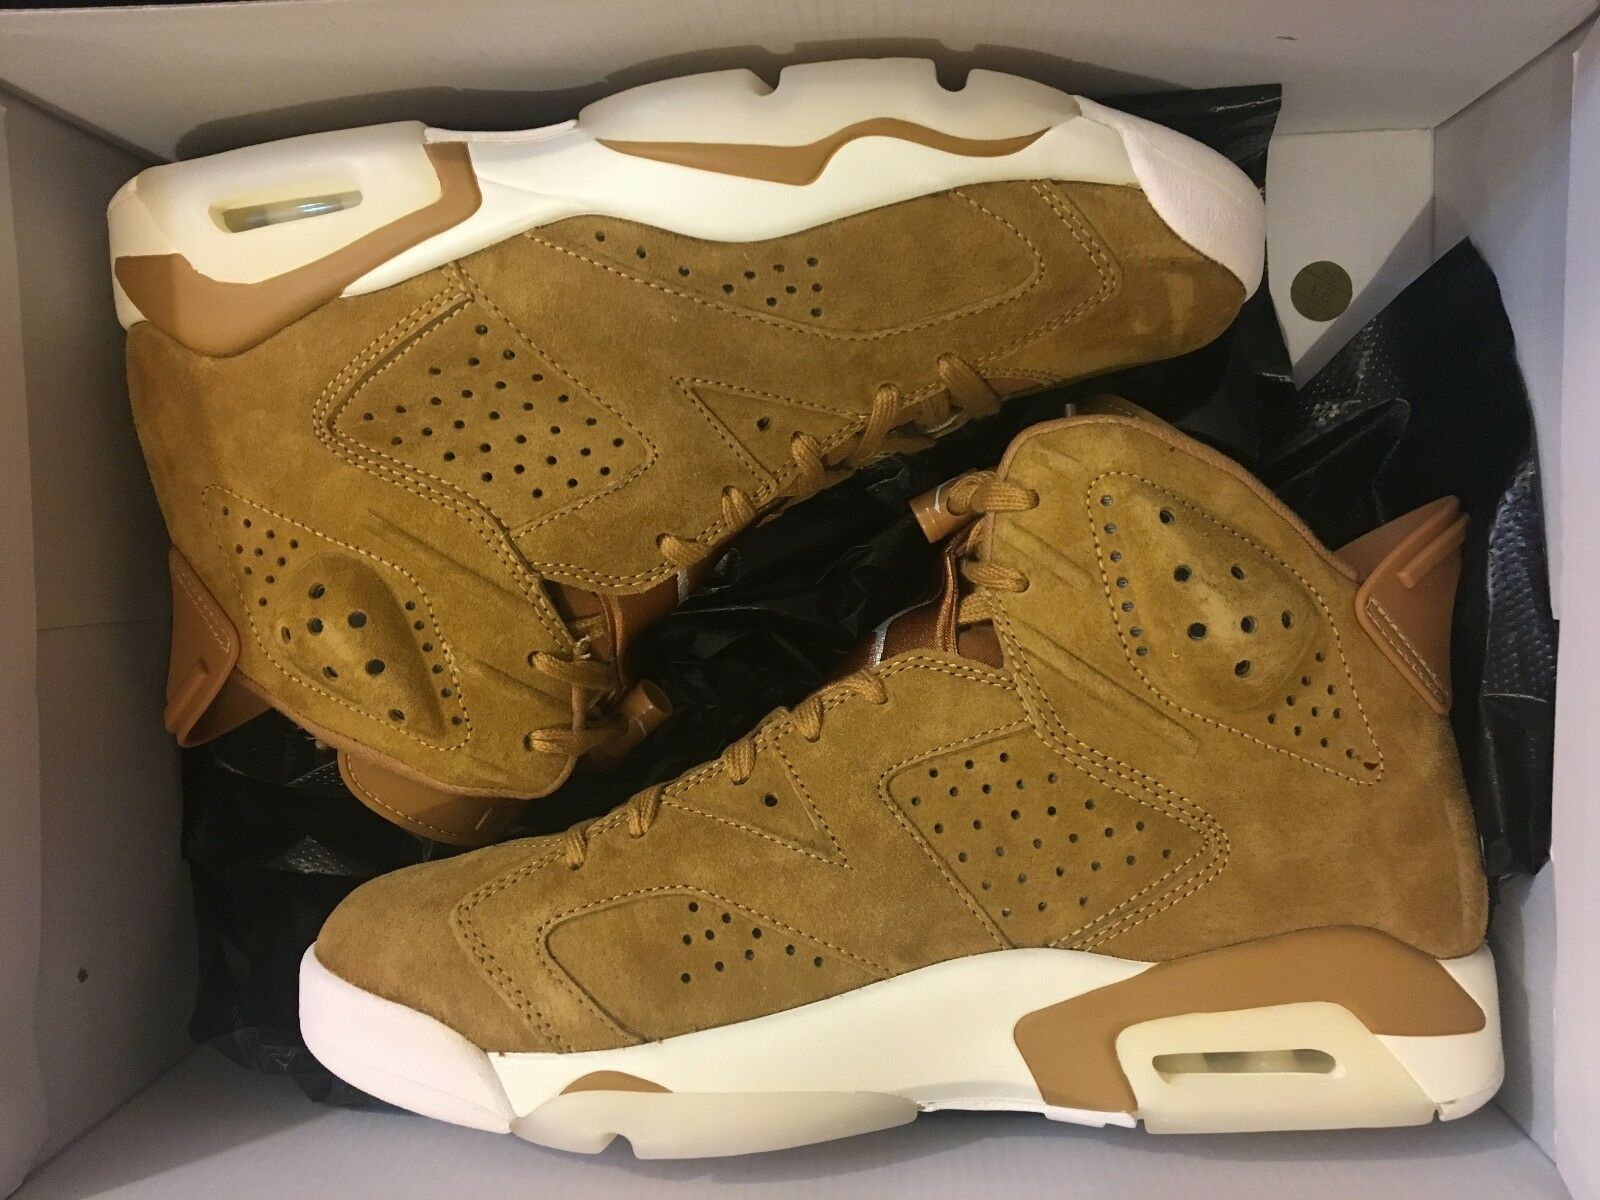 NEW NIKE AIR JORDAN 6 RETRO GOLDEN HARVEST WHEAT SHOE 384664-705 MEN SIZE 8.5